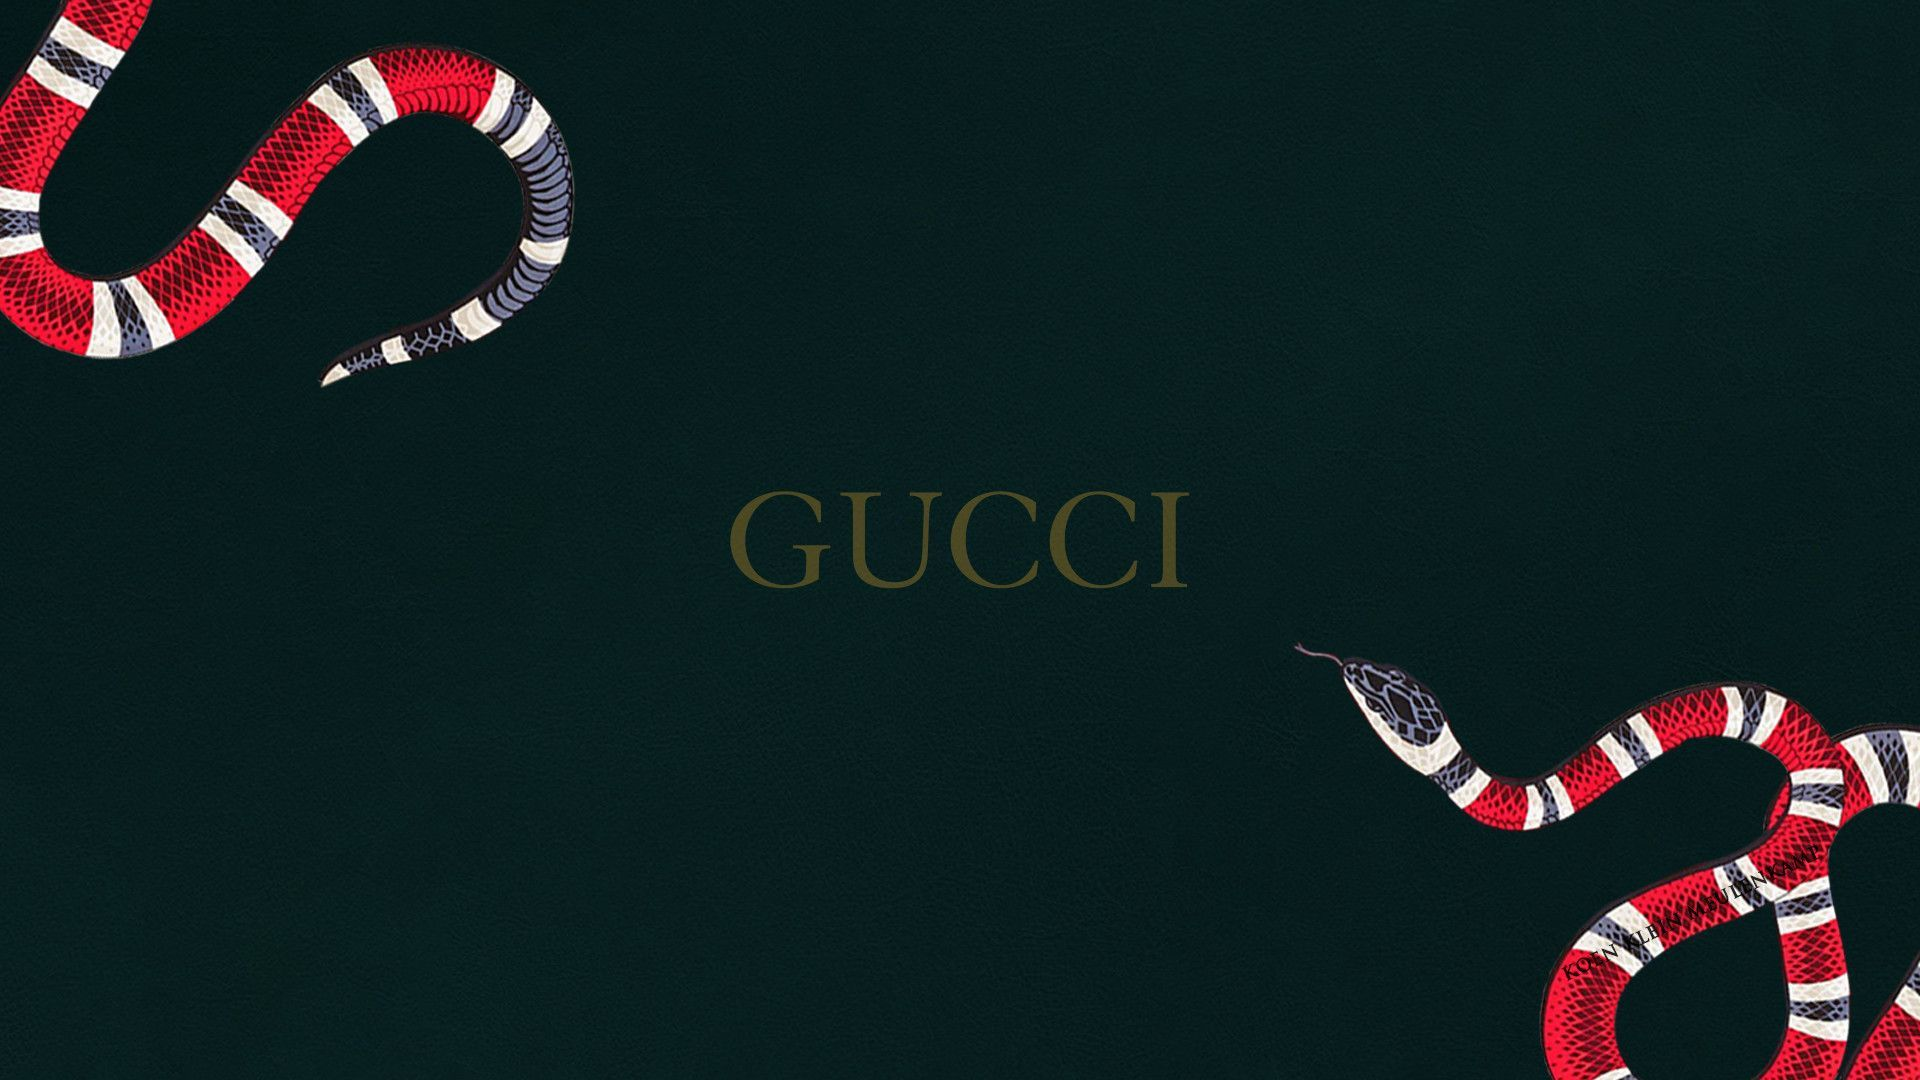 1920x1080 1920x1080 ... 13 Gucci Snakes wallpapers + PSD files by fkkm1999 ...